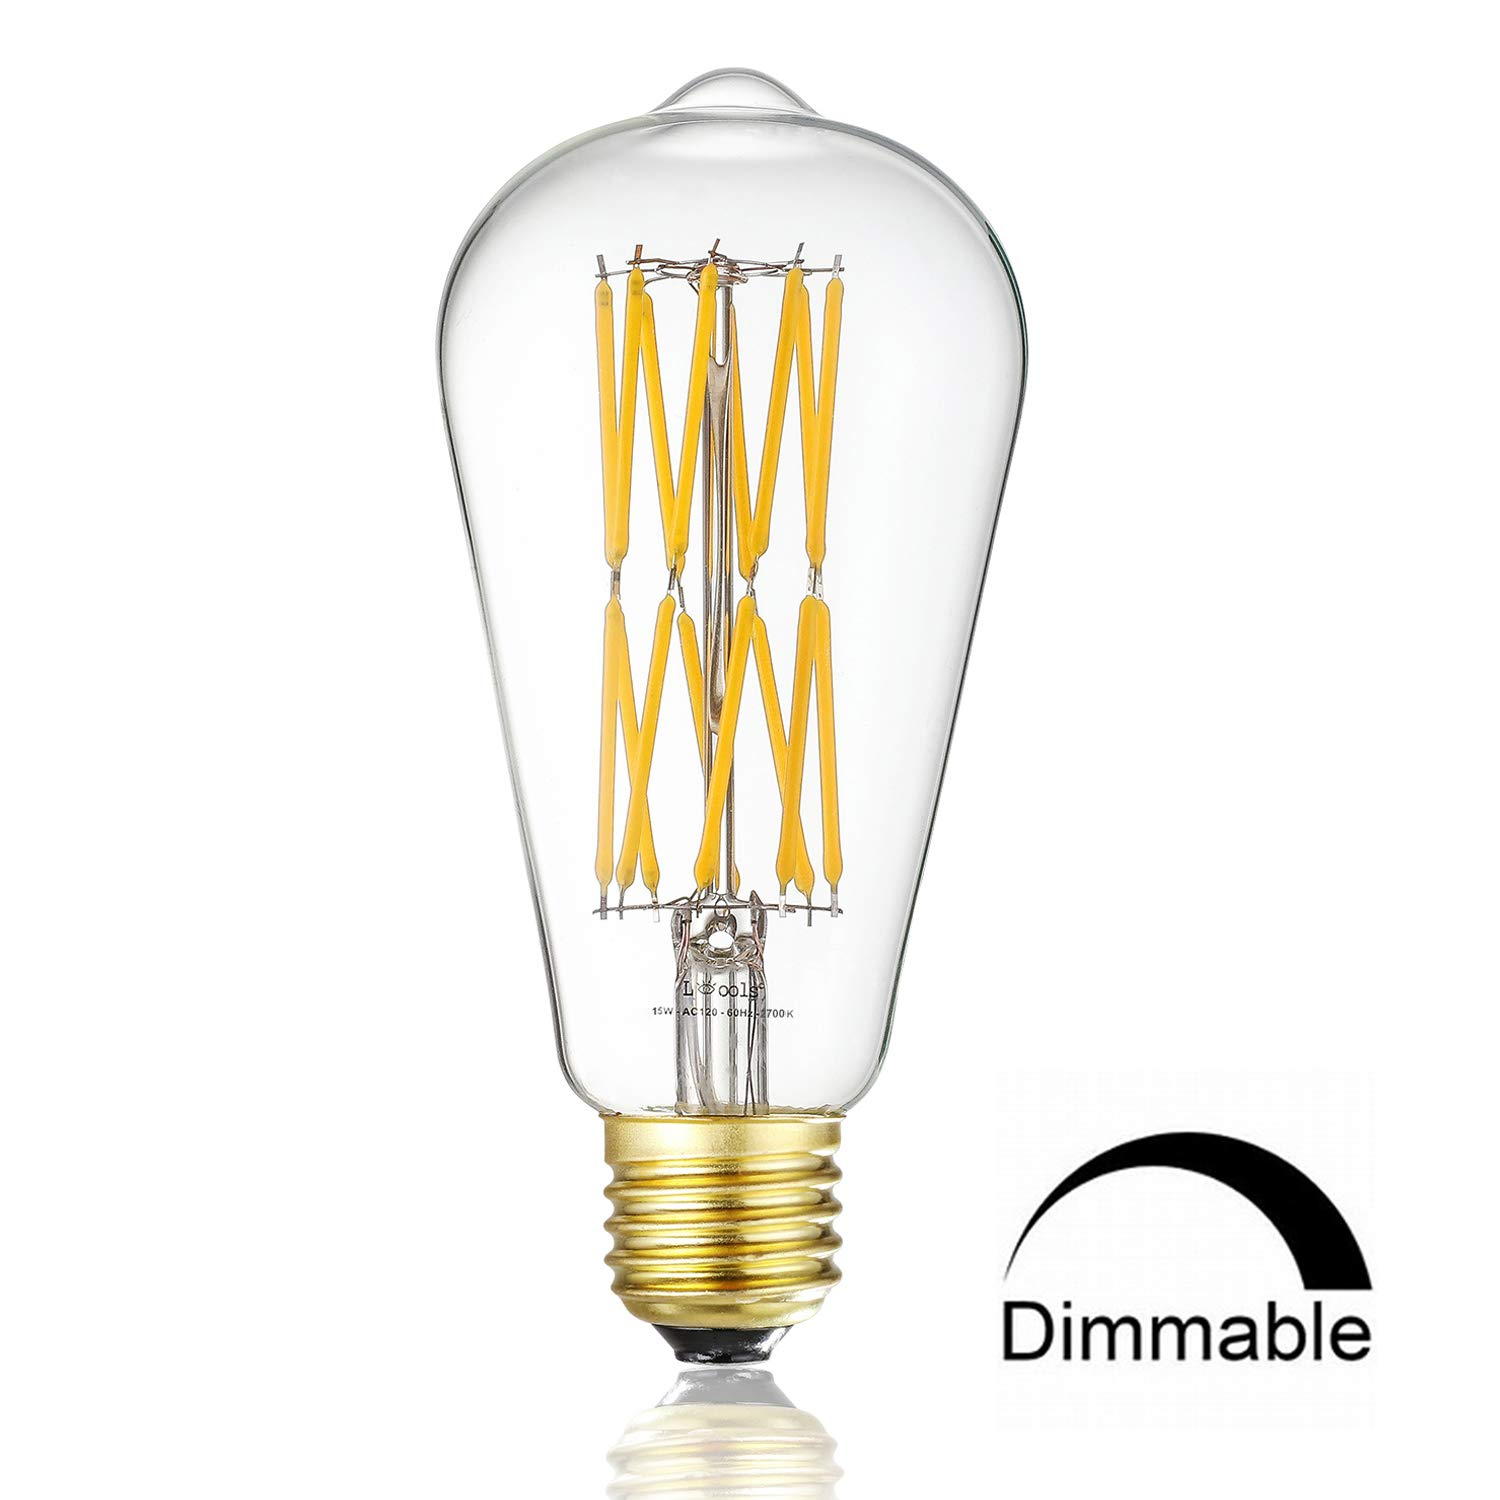 Leools LED Edison Bulb 15W Dimmable 2700K Warm White 1200LM, 120W Equivalent E26 Medium Base, ST64 Vintage LED Filament Bulbs, 360 Degrees Beam Angle, Pack of 1